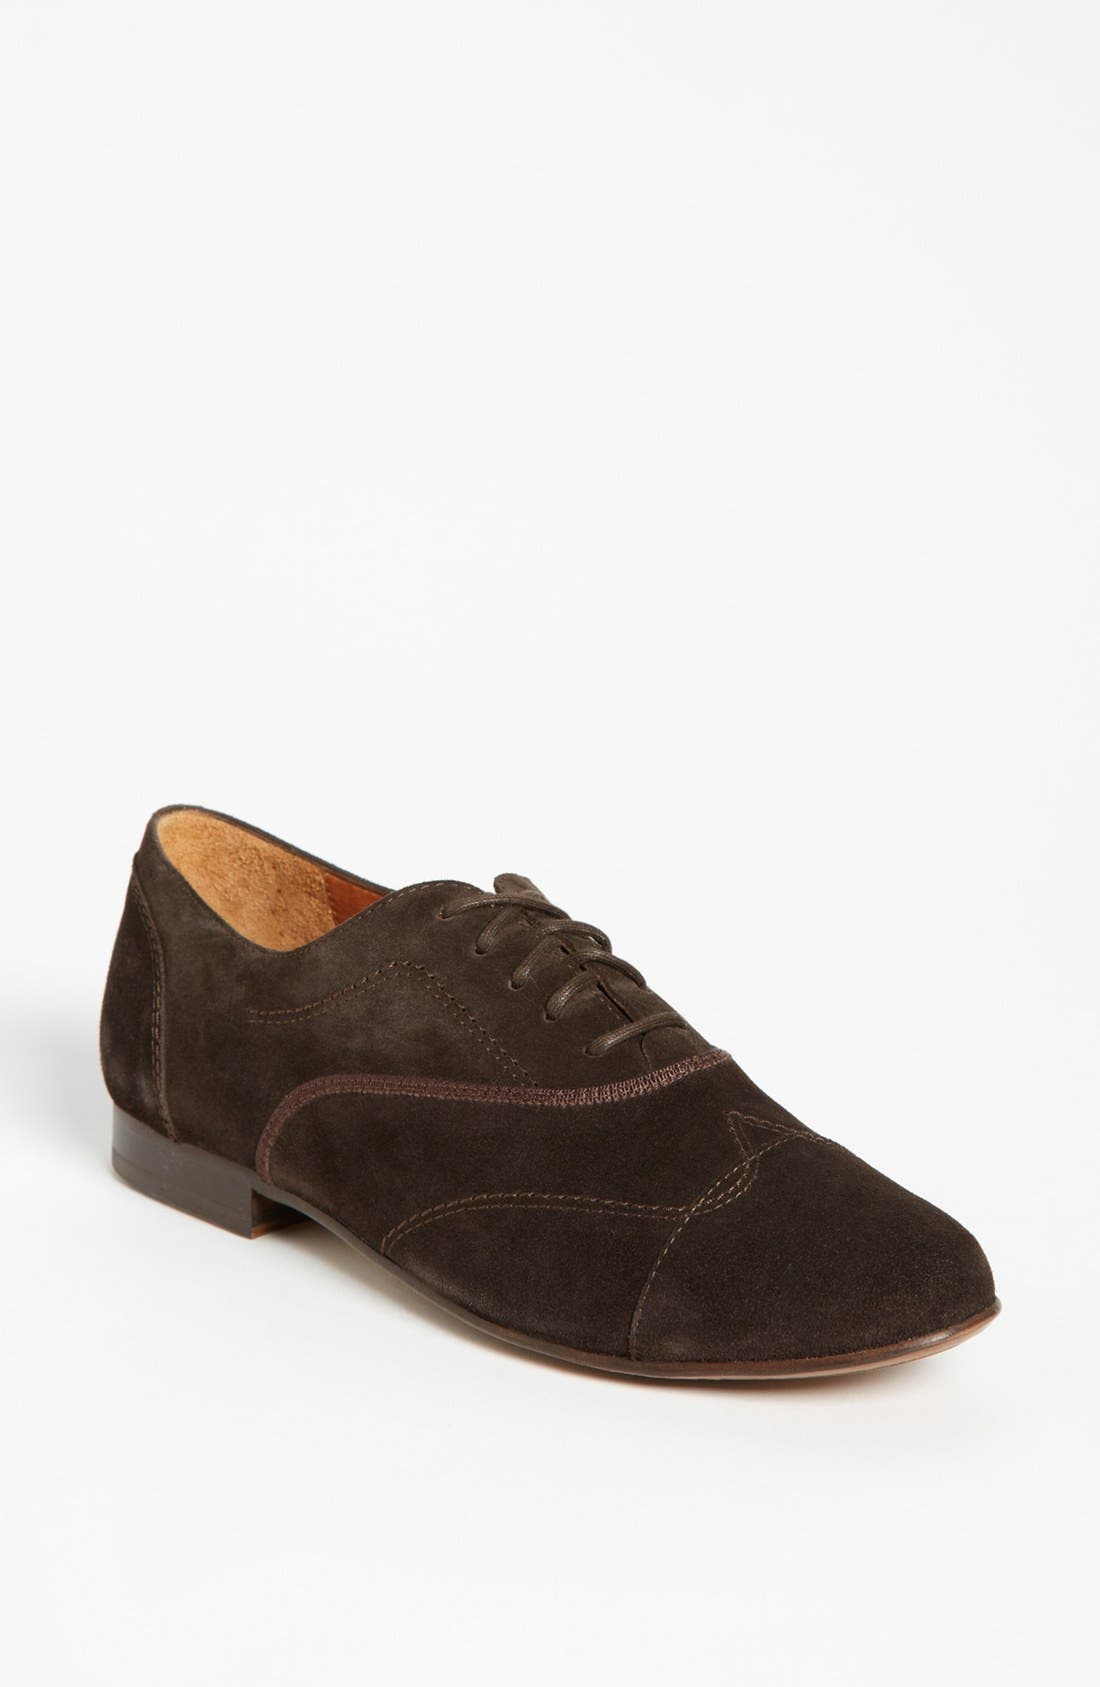 Alternate Image 1 Selected - Lanvin Oxford Flat